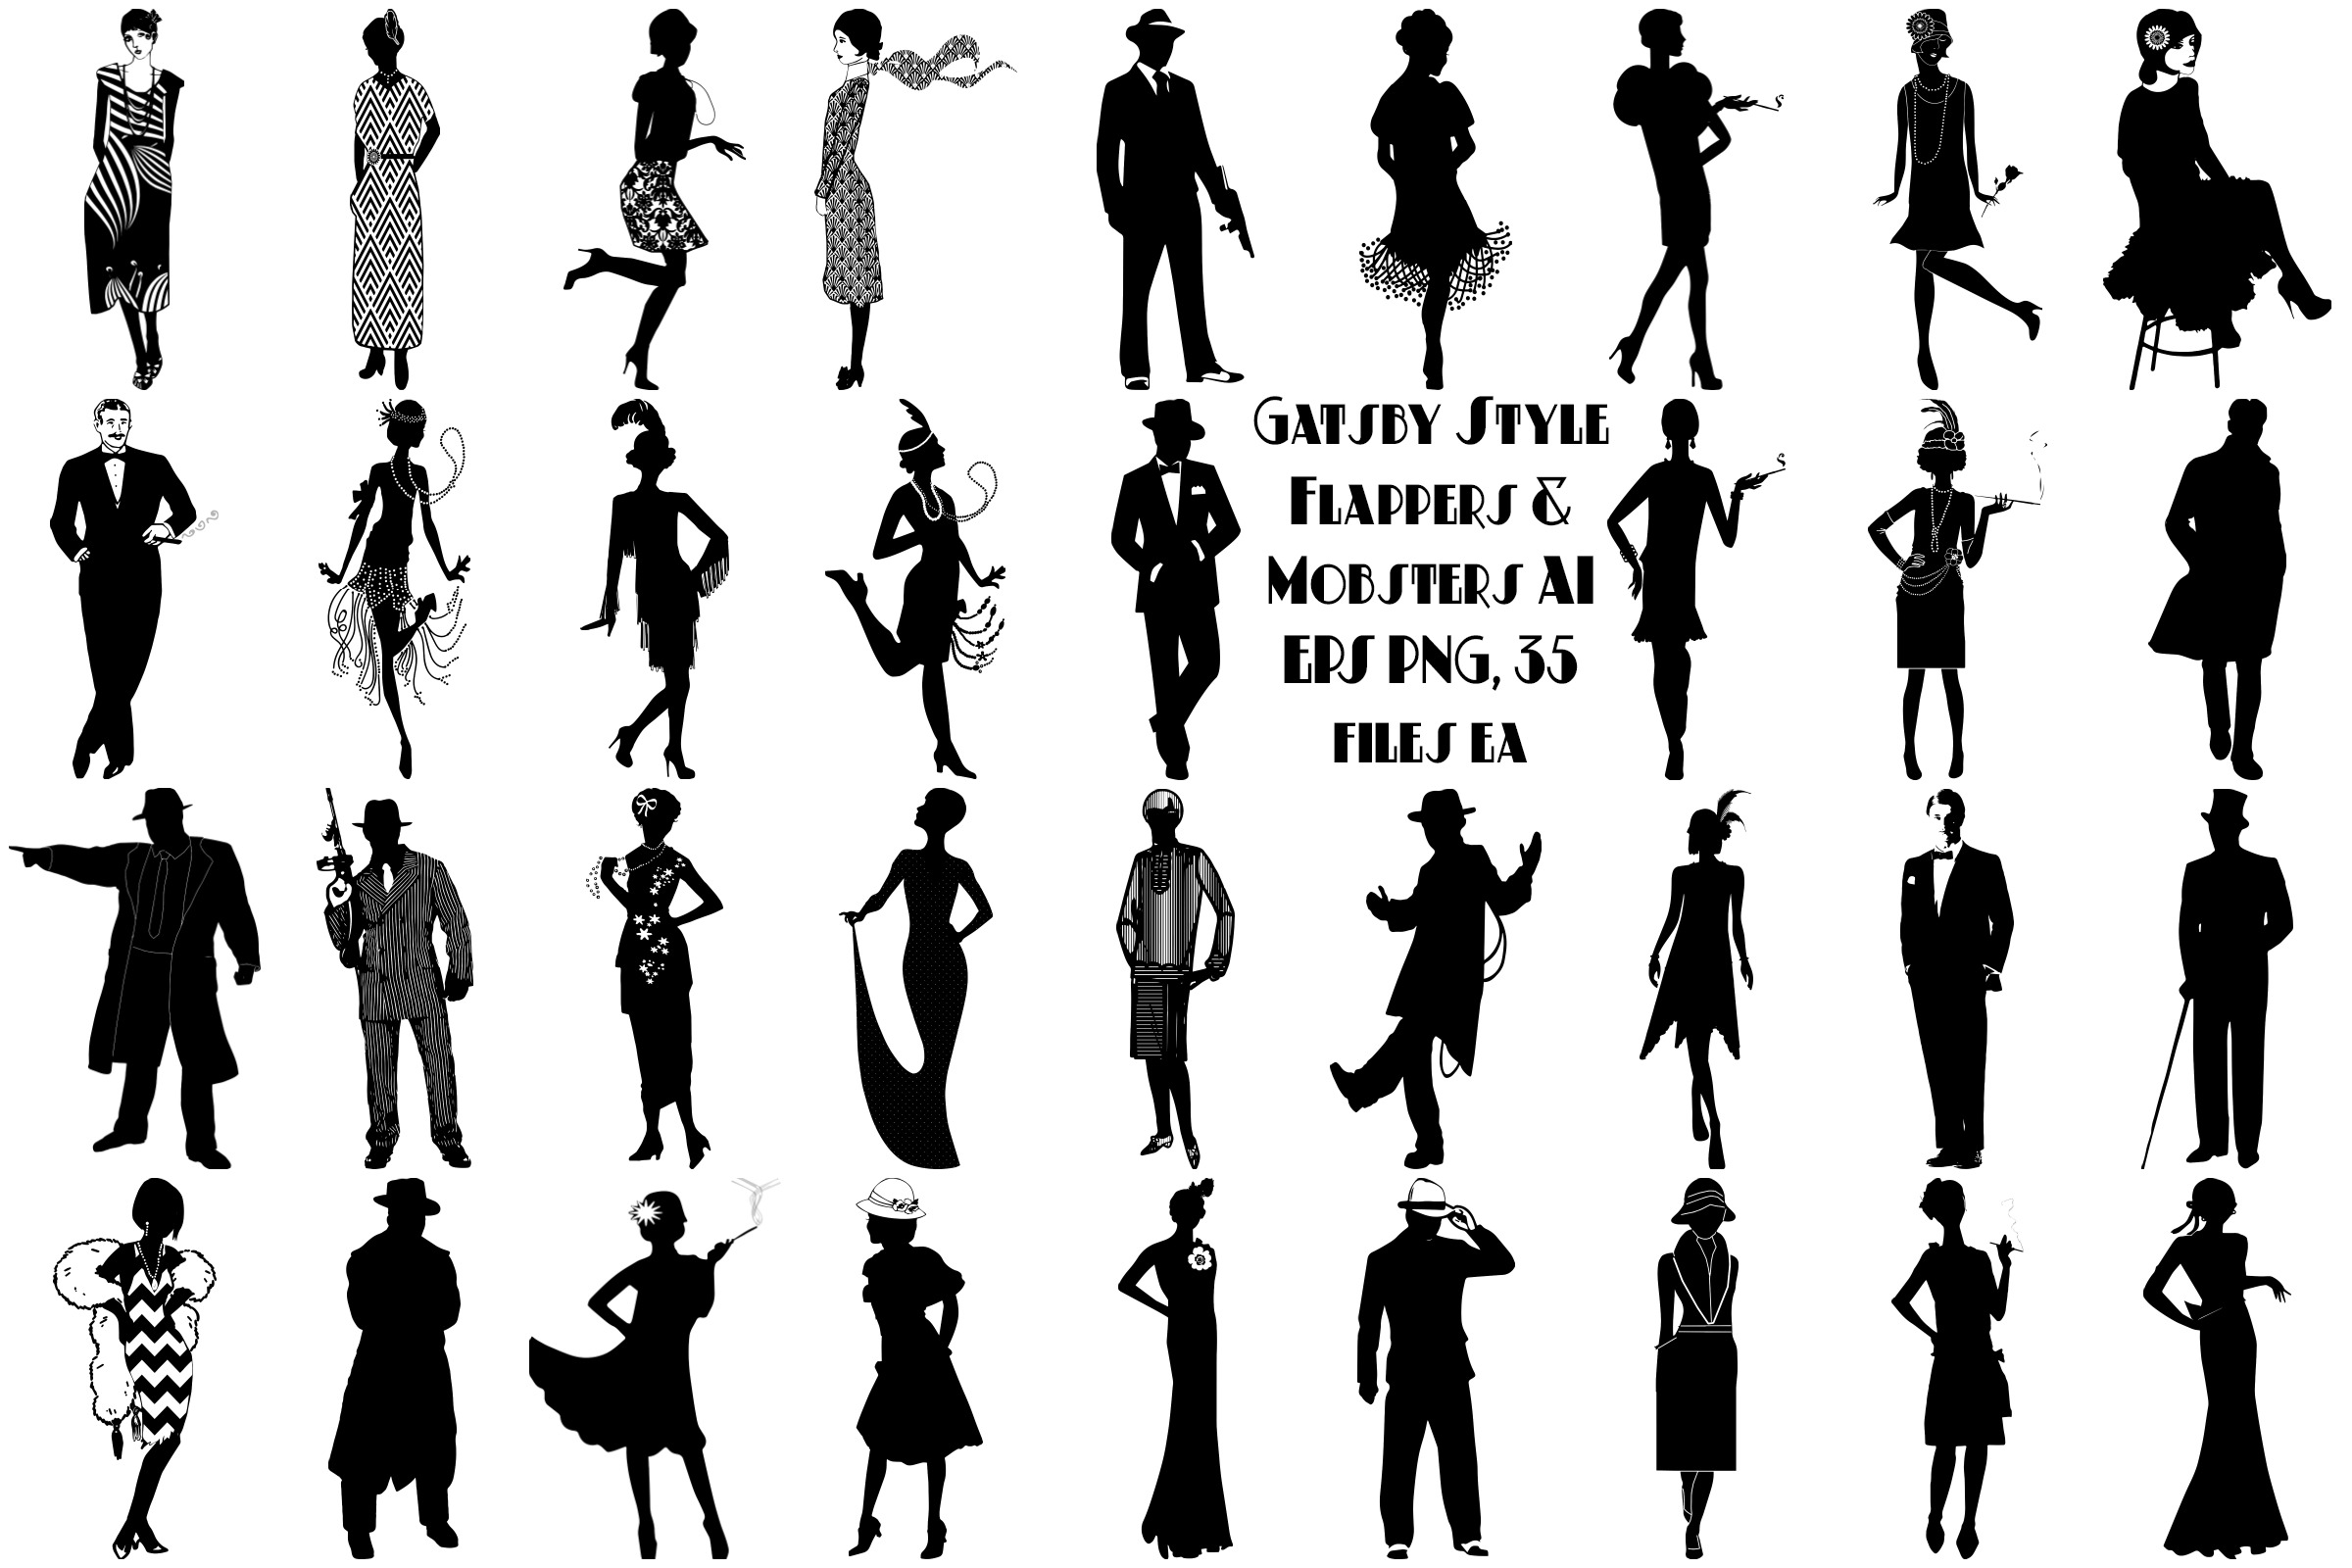 Art Deco Gatsby Style Flappers & Mobsters AI EPS Vector &PNG example image 1